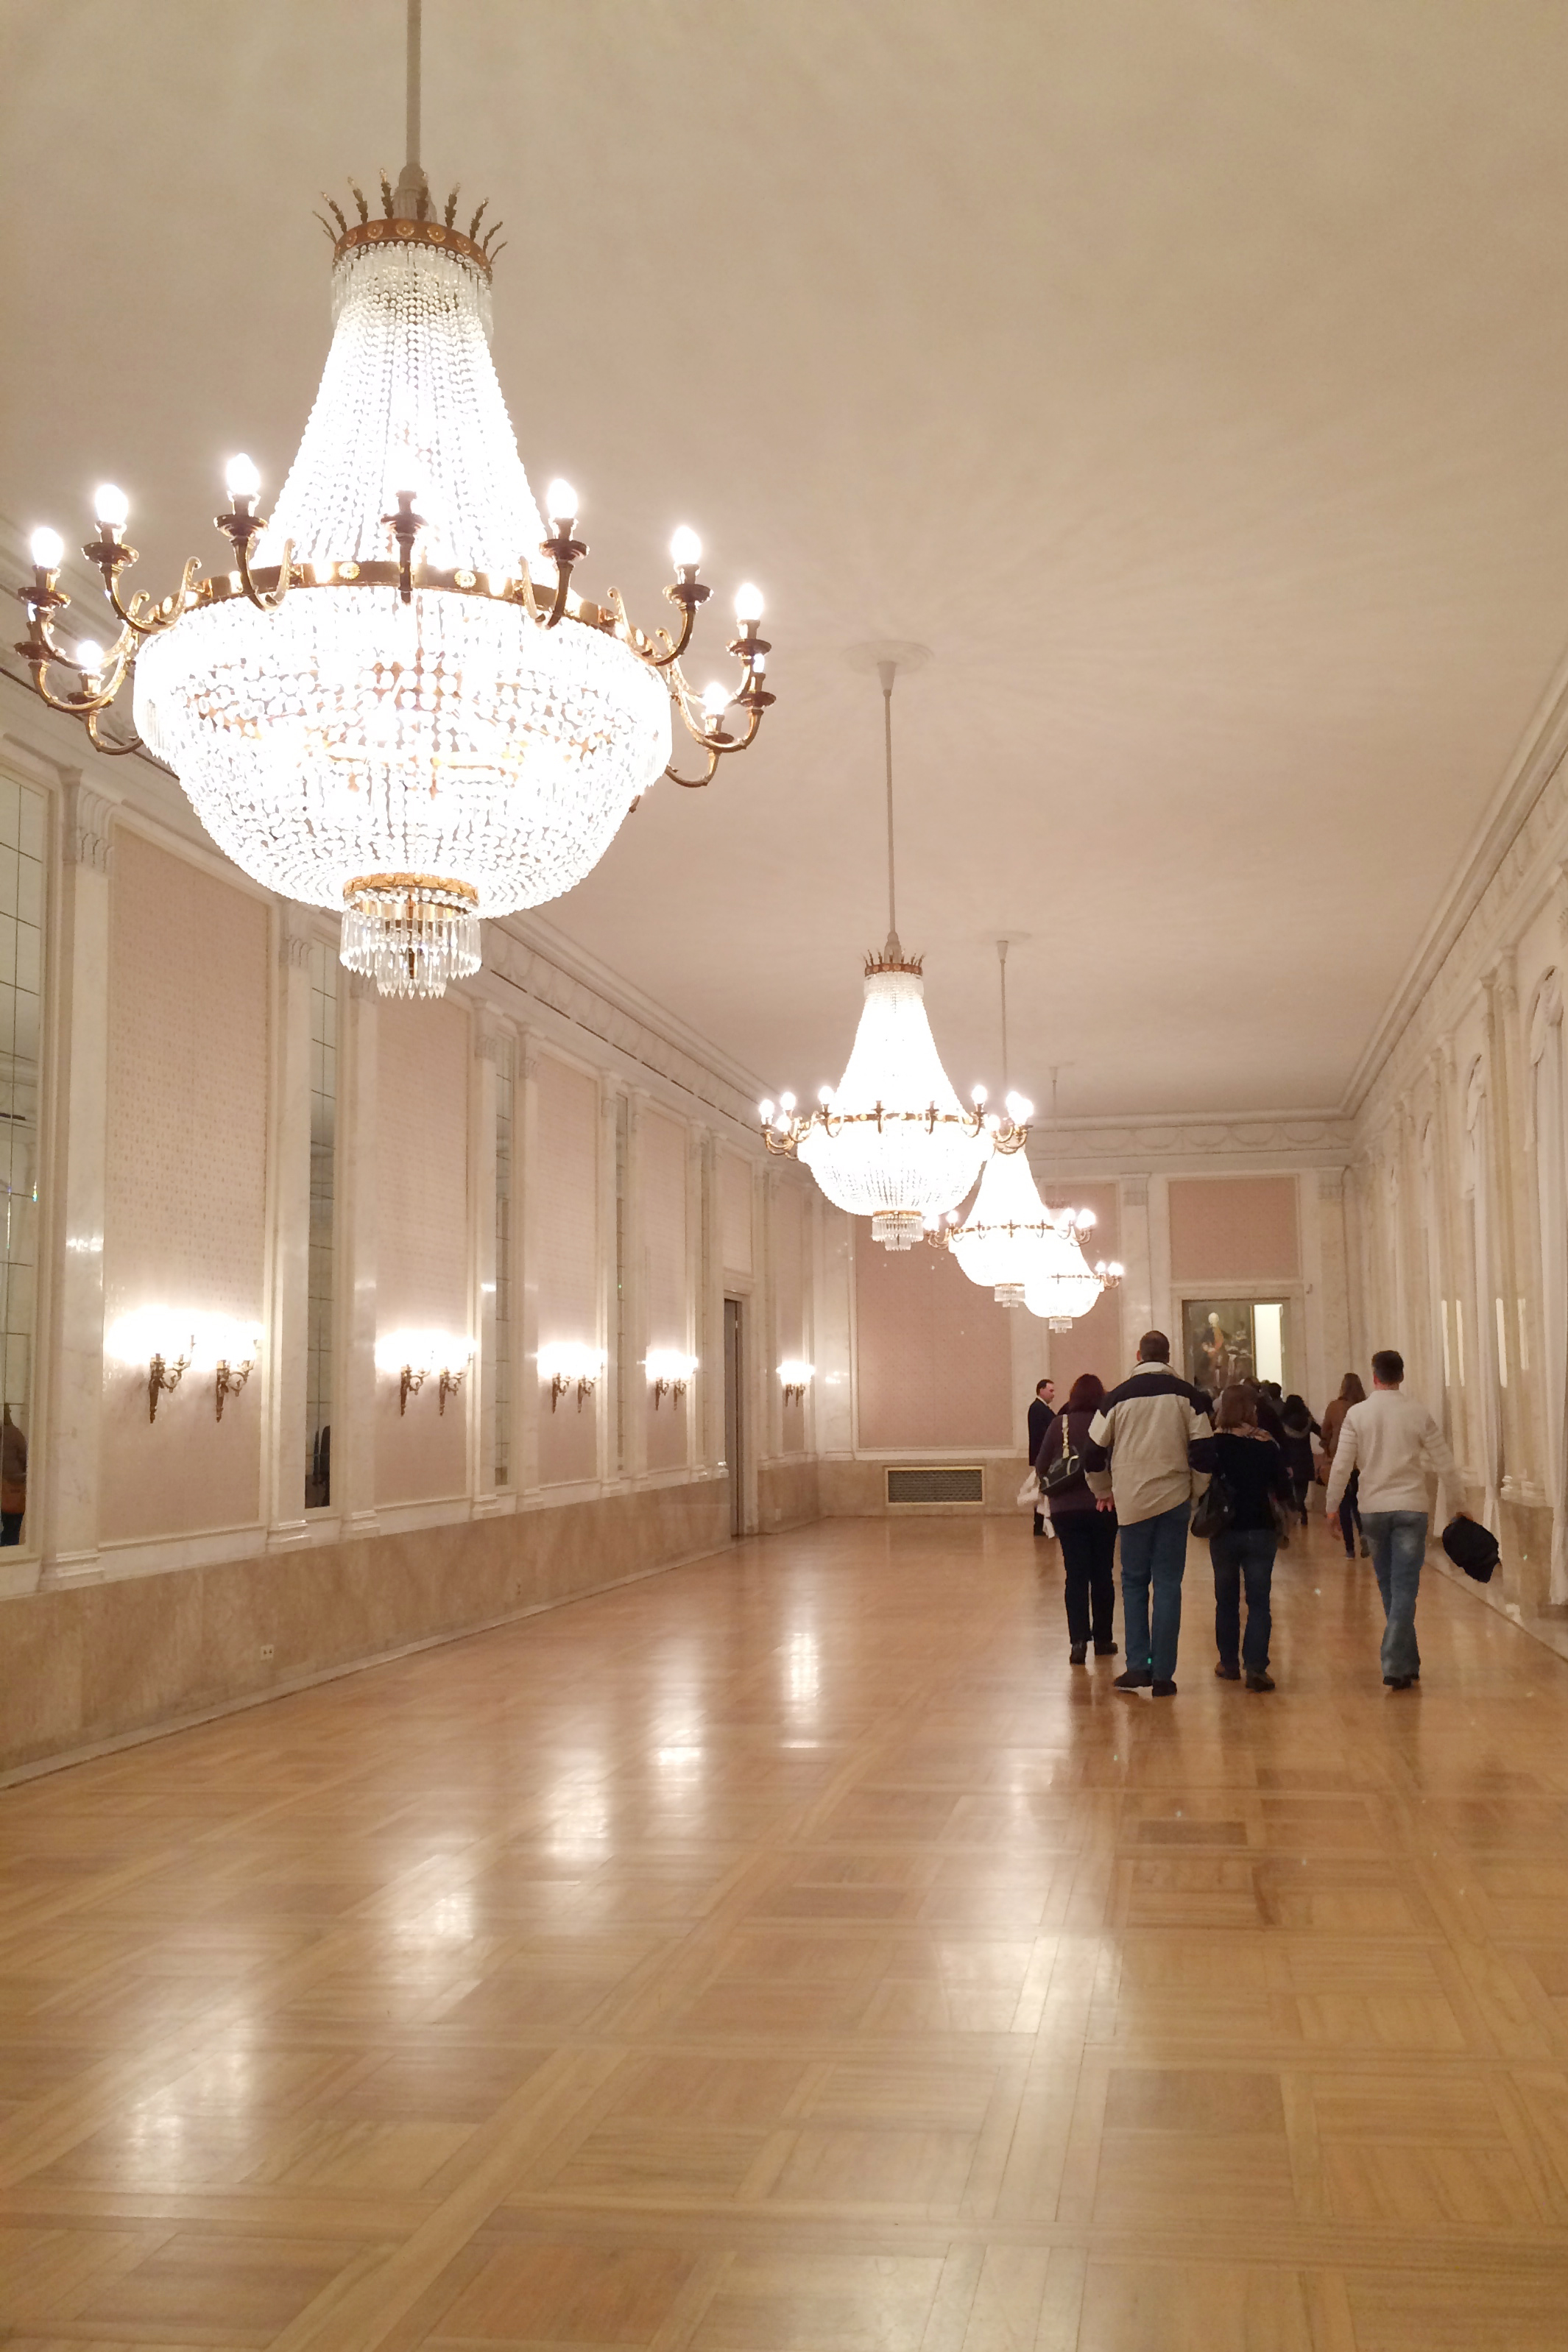 """Inside the Neues Schloss. Just after I took this picture, a couple from the tour started dancing in here. The tour guide laughed at them and said something in German. All I caught was """"Nein!.... Essen..."""" So I'm guessing this room is for eating, not dancing :)"""